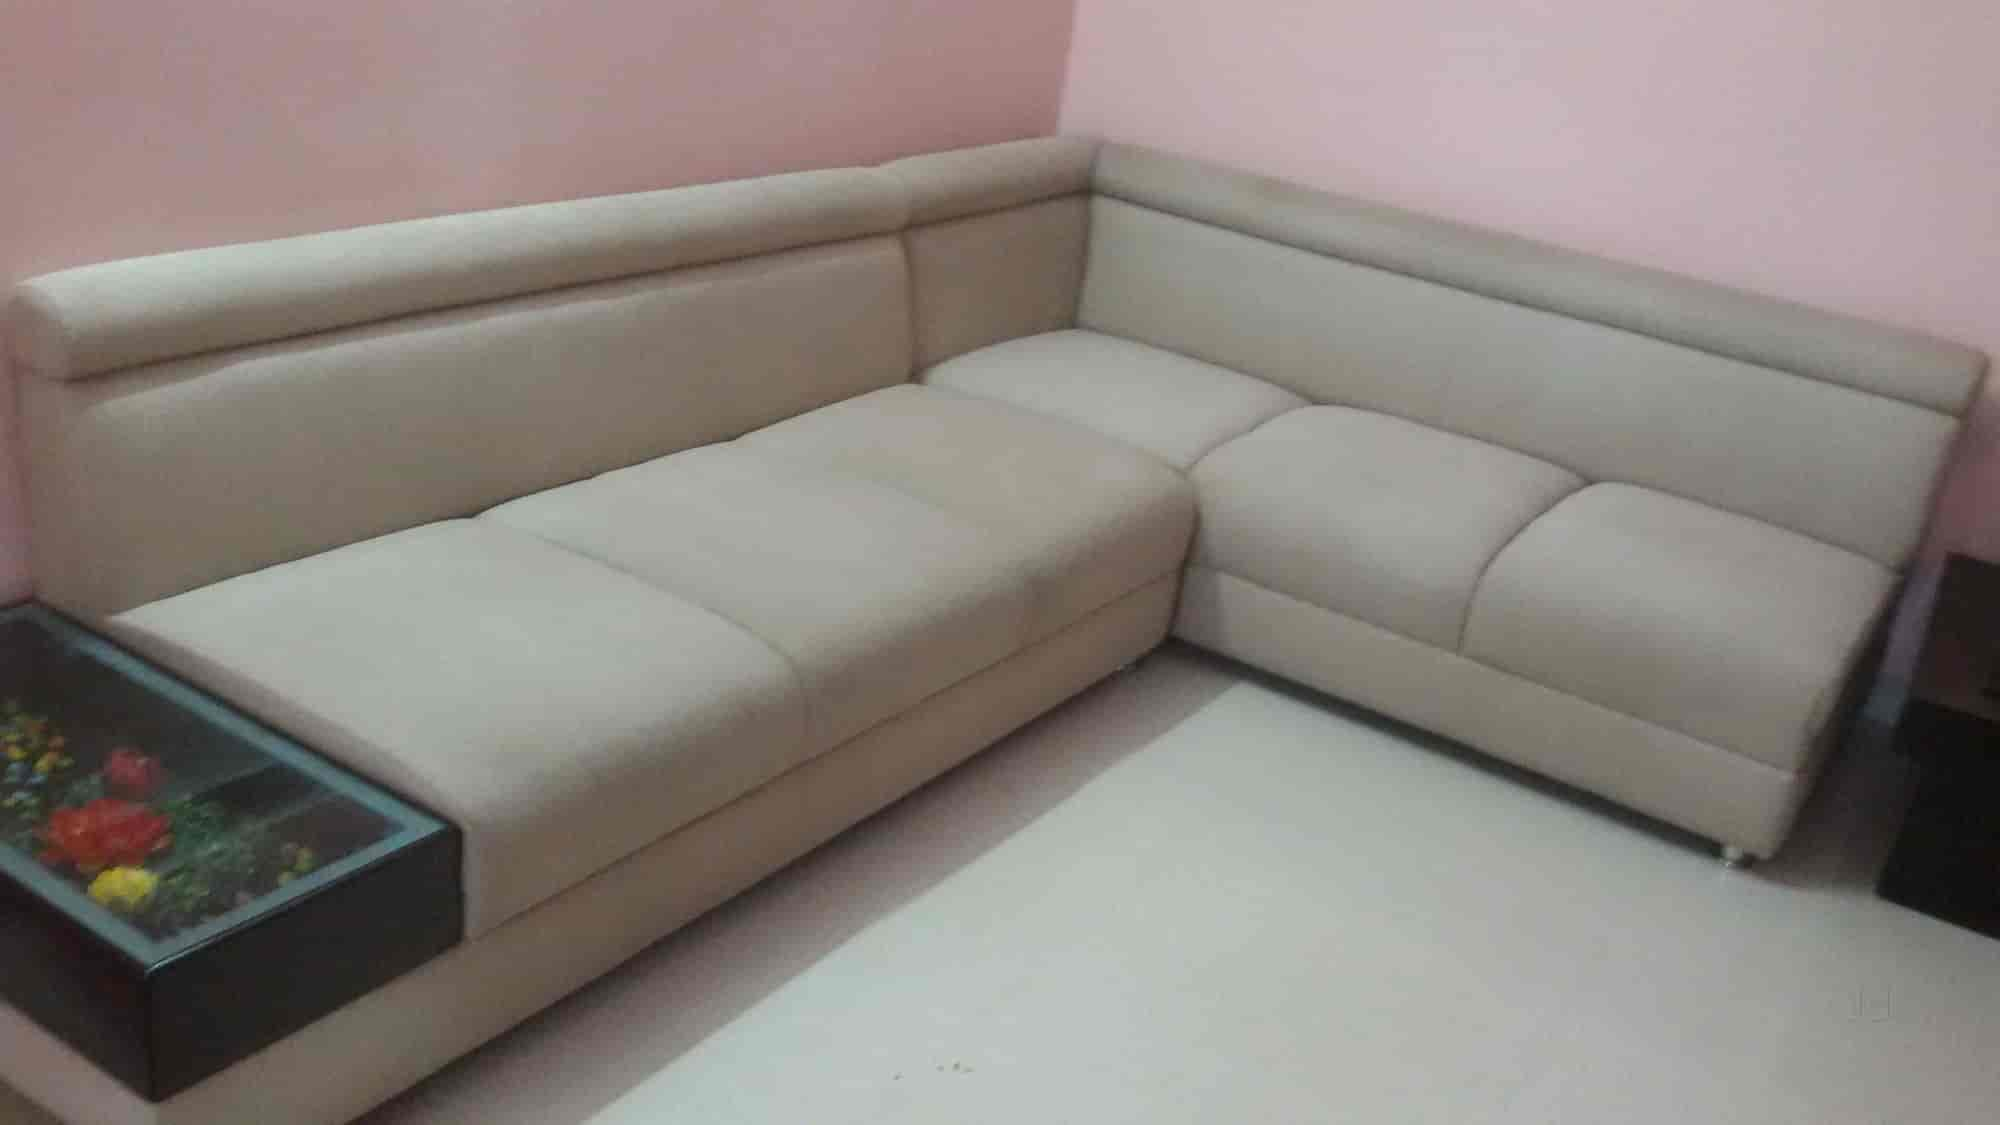 sofa dry cleaner in delhi ligne roset bed prices cleaning jaipur baci living room